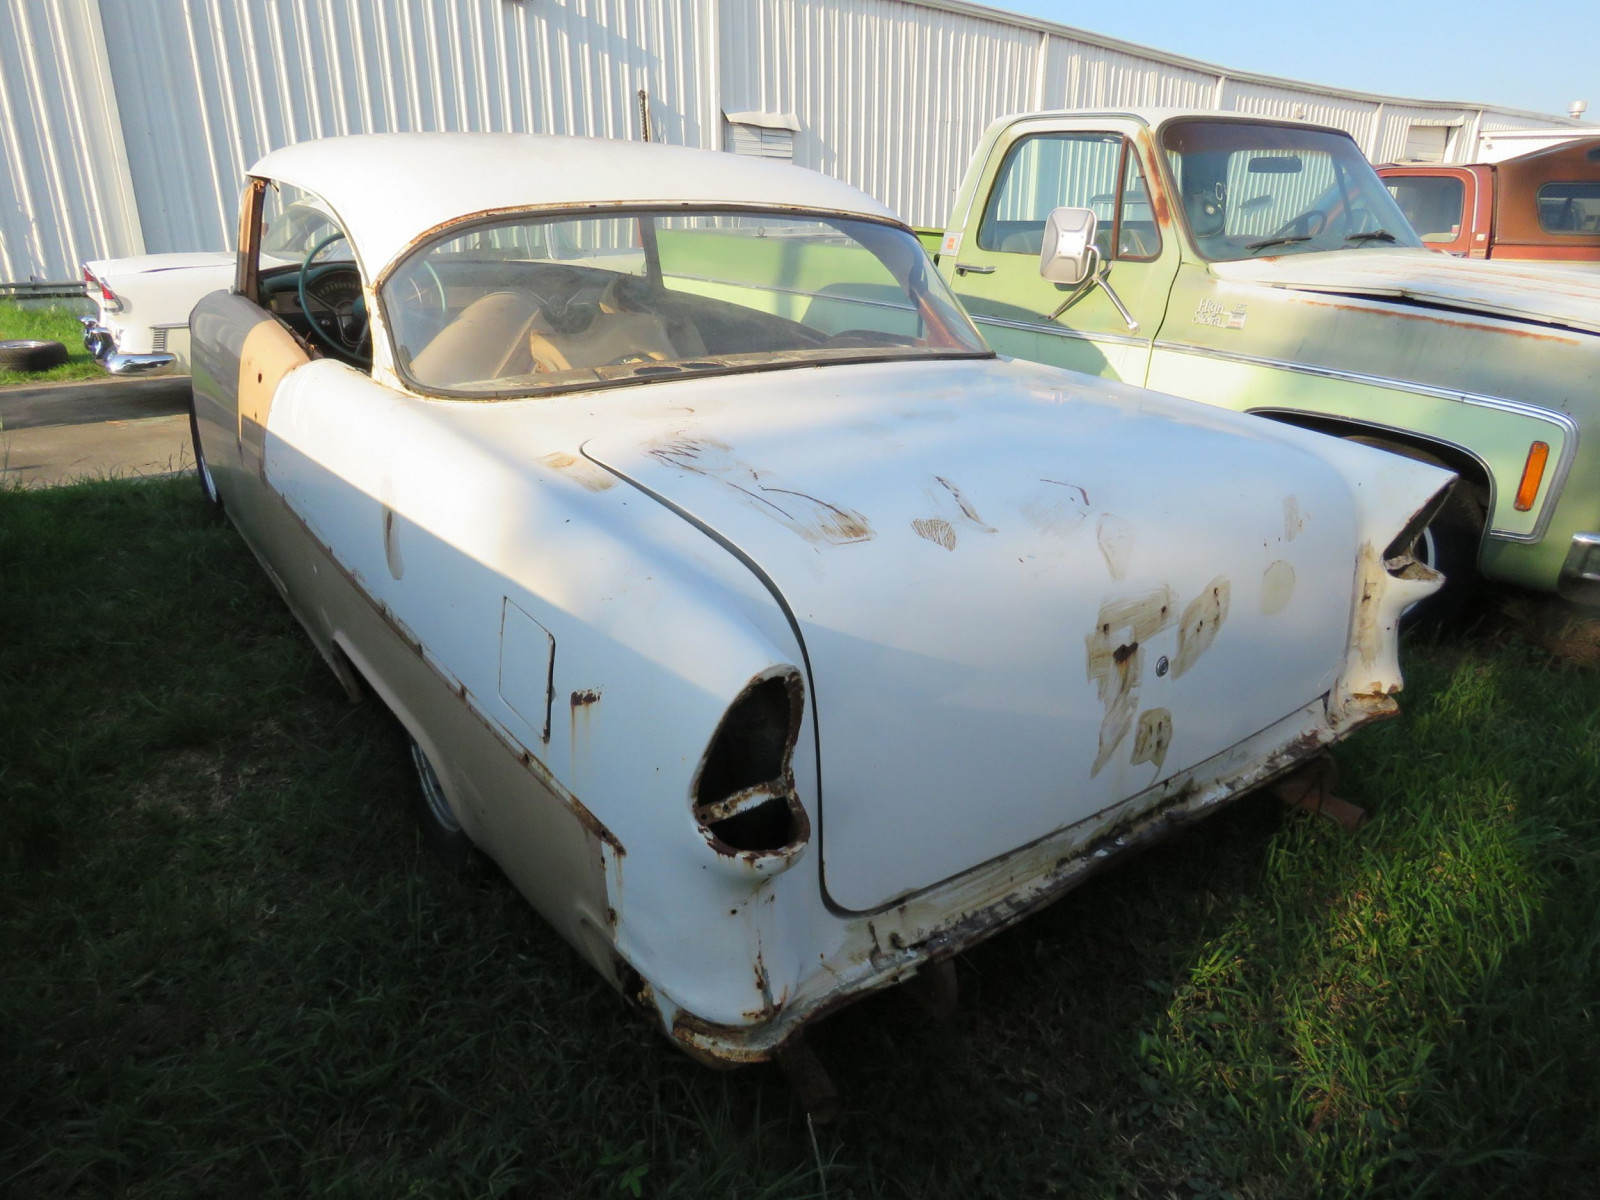 1955 Chevrolet for project - Image 4